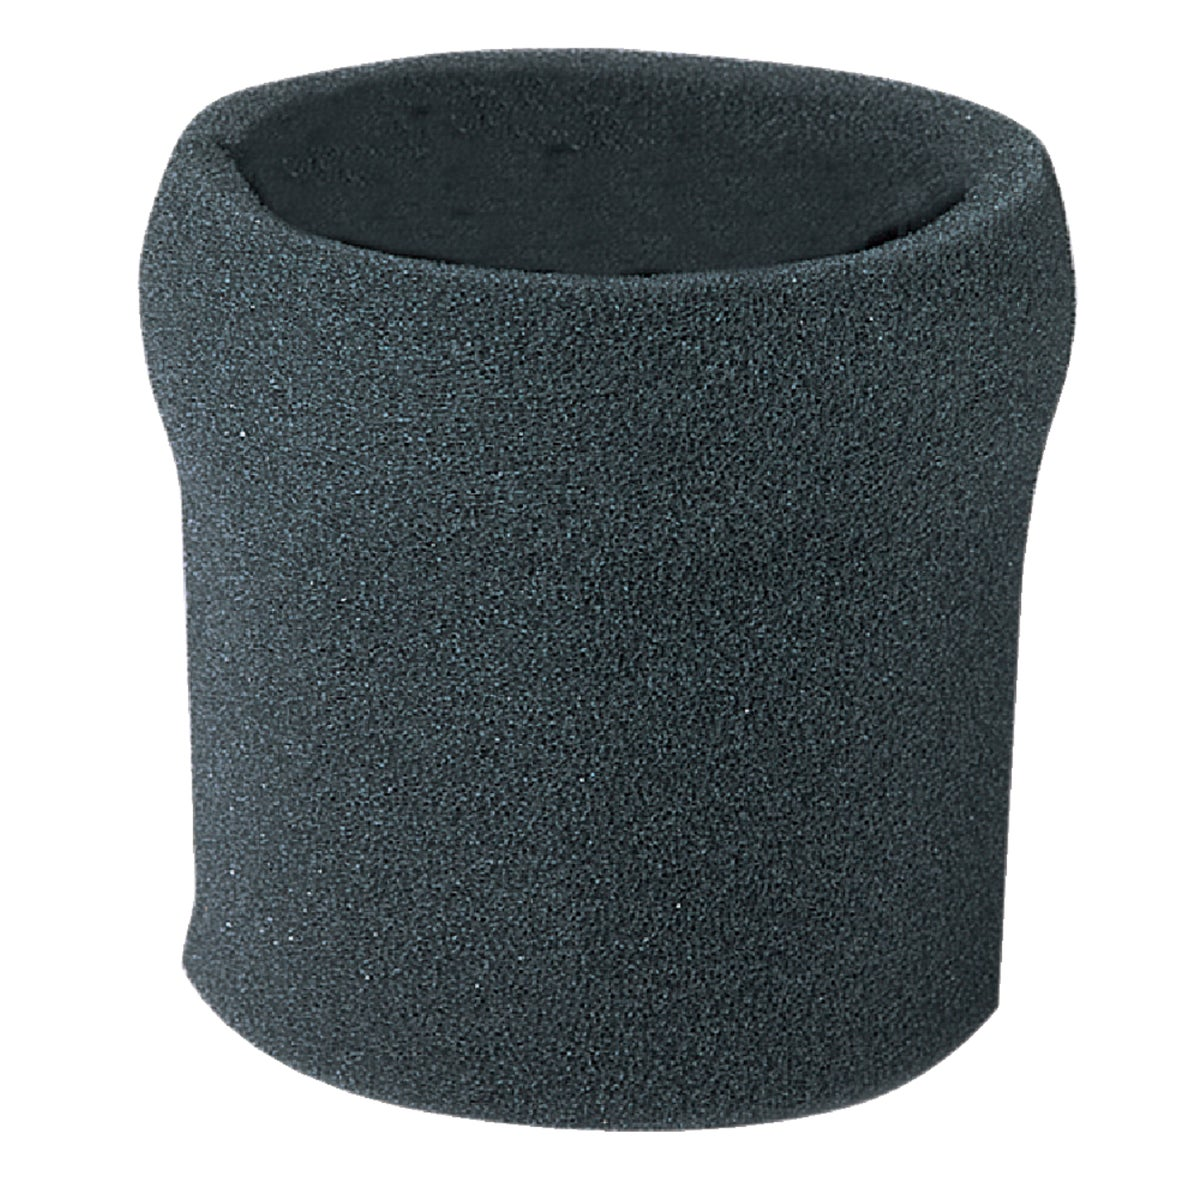 FOAM FILTER - 9058500 by Shop Vac Corp